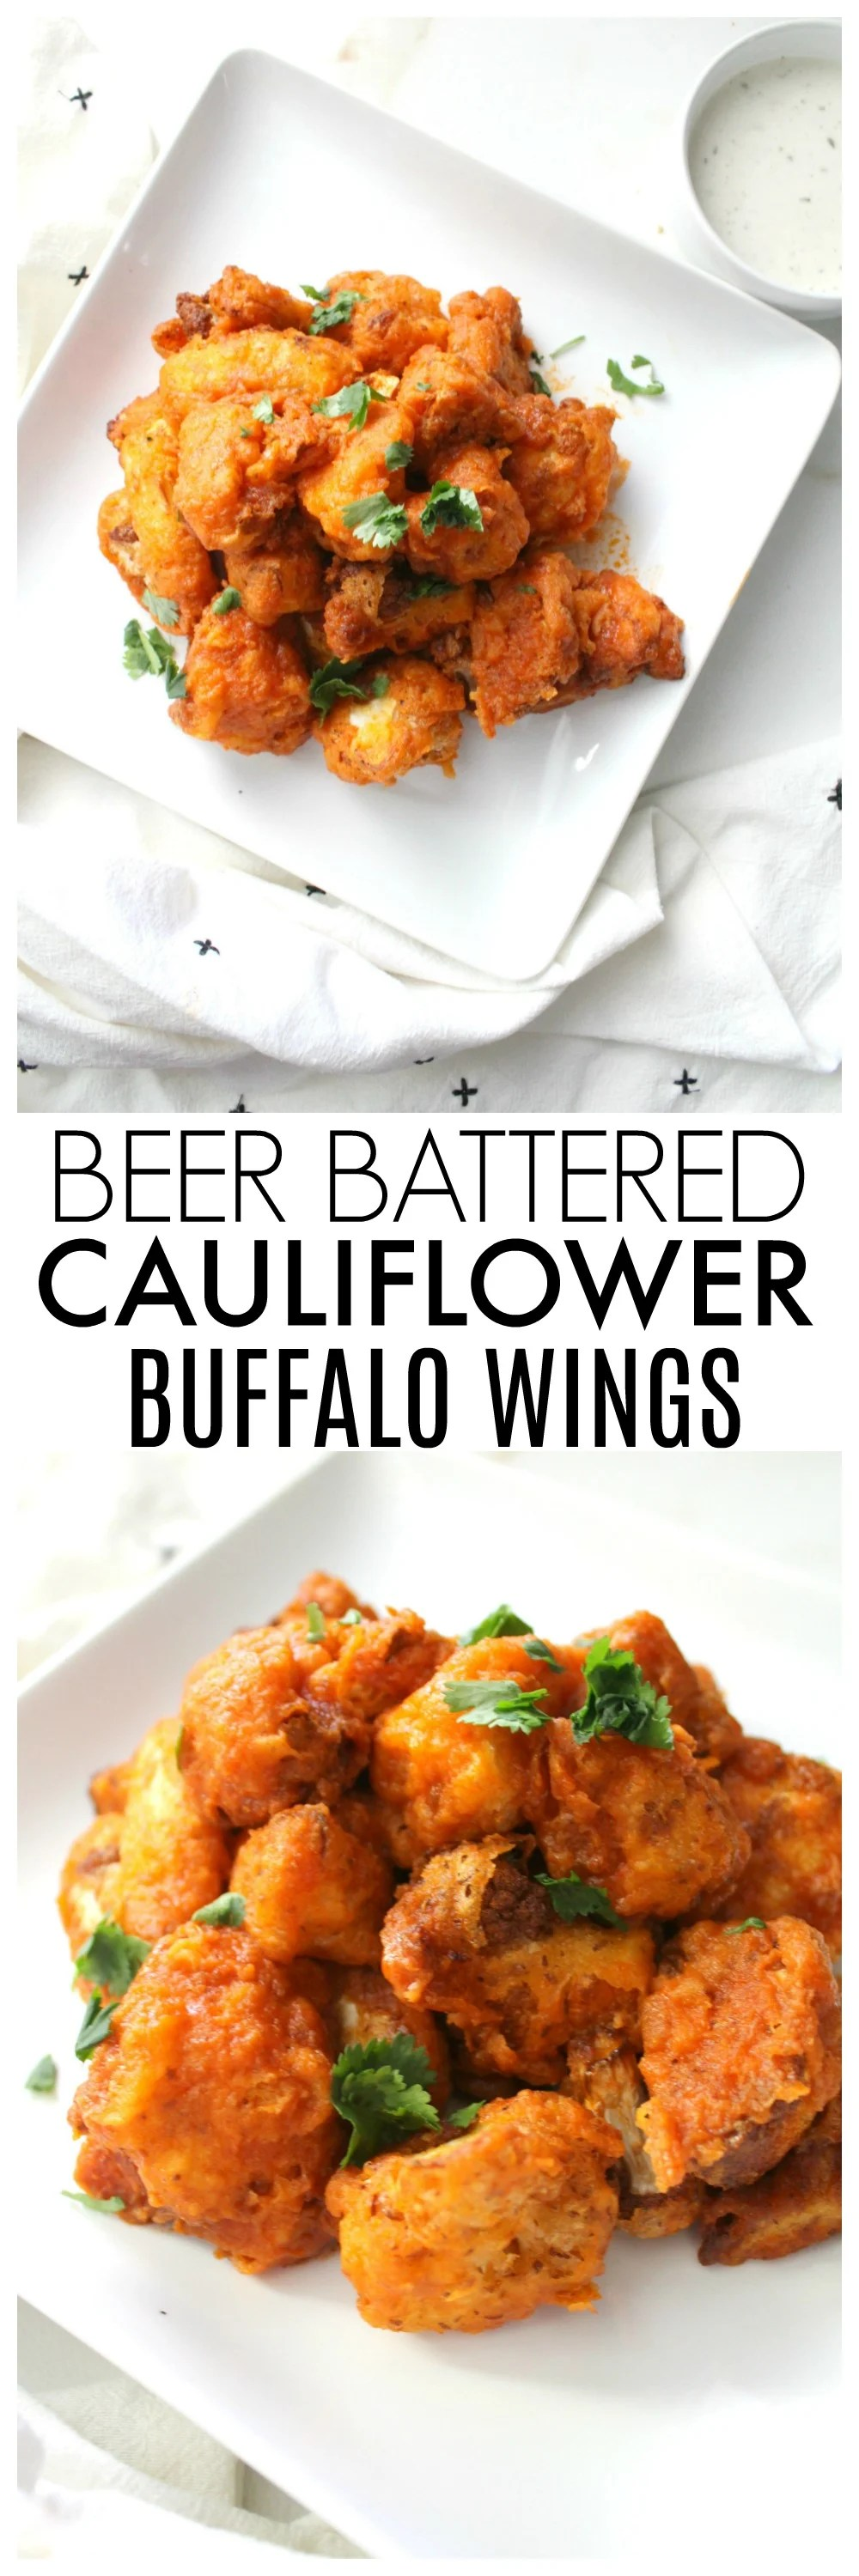 TheseBeer Battered Cauliflower Buffalo Wings are the perfect balance of spice and crunch. A vegan game day recipe that everyone will love!  ThisSavoryVegan.com #vegan #gameday